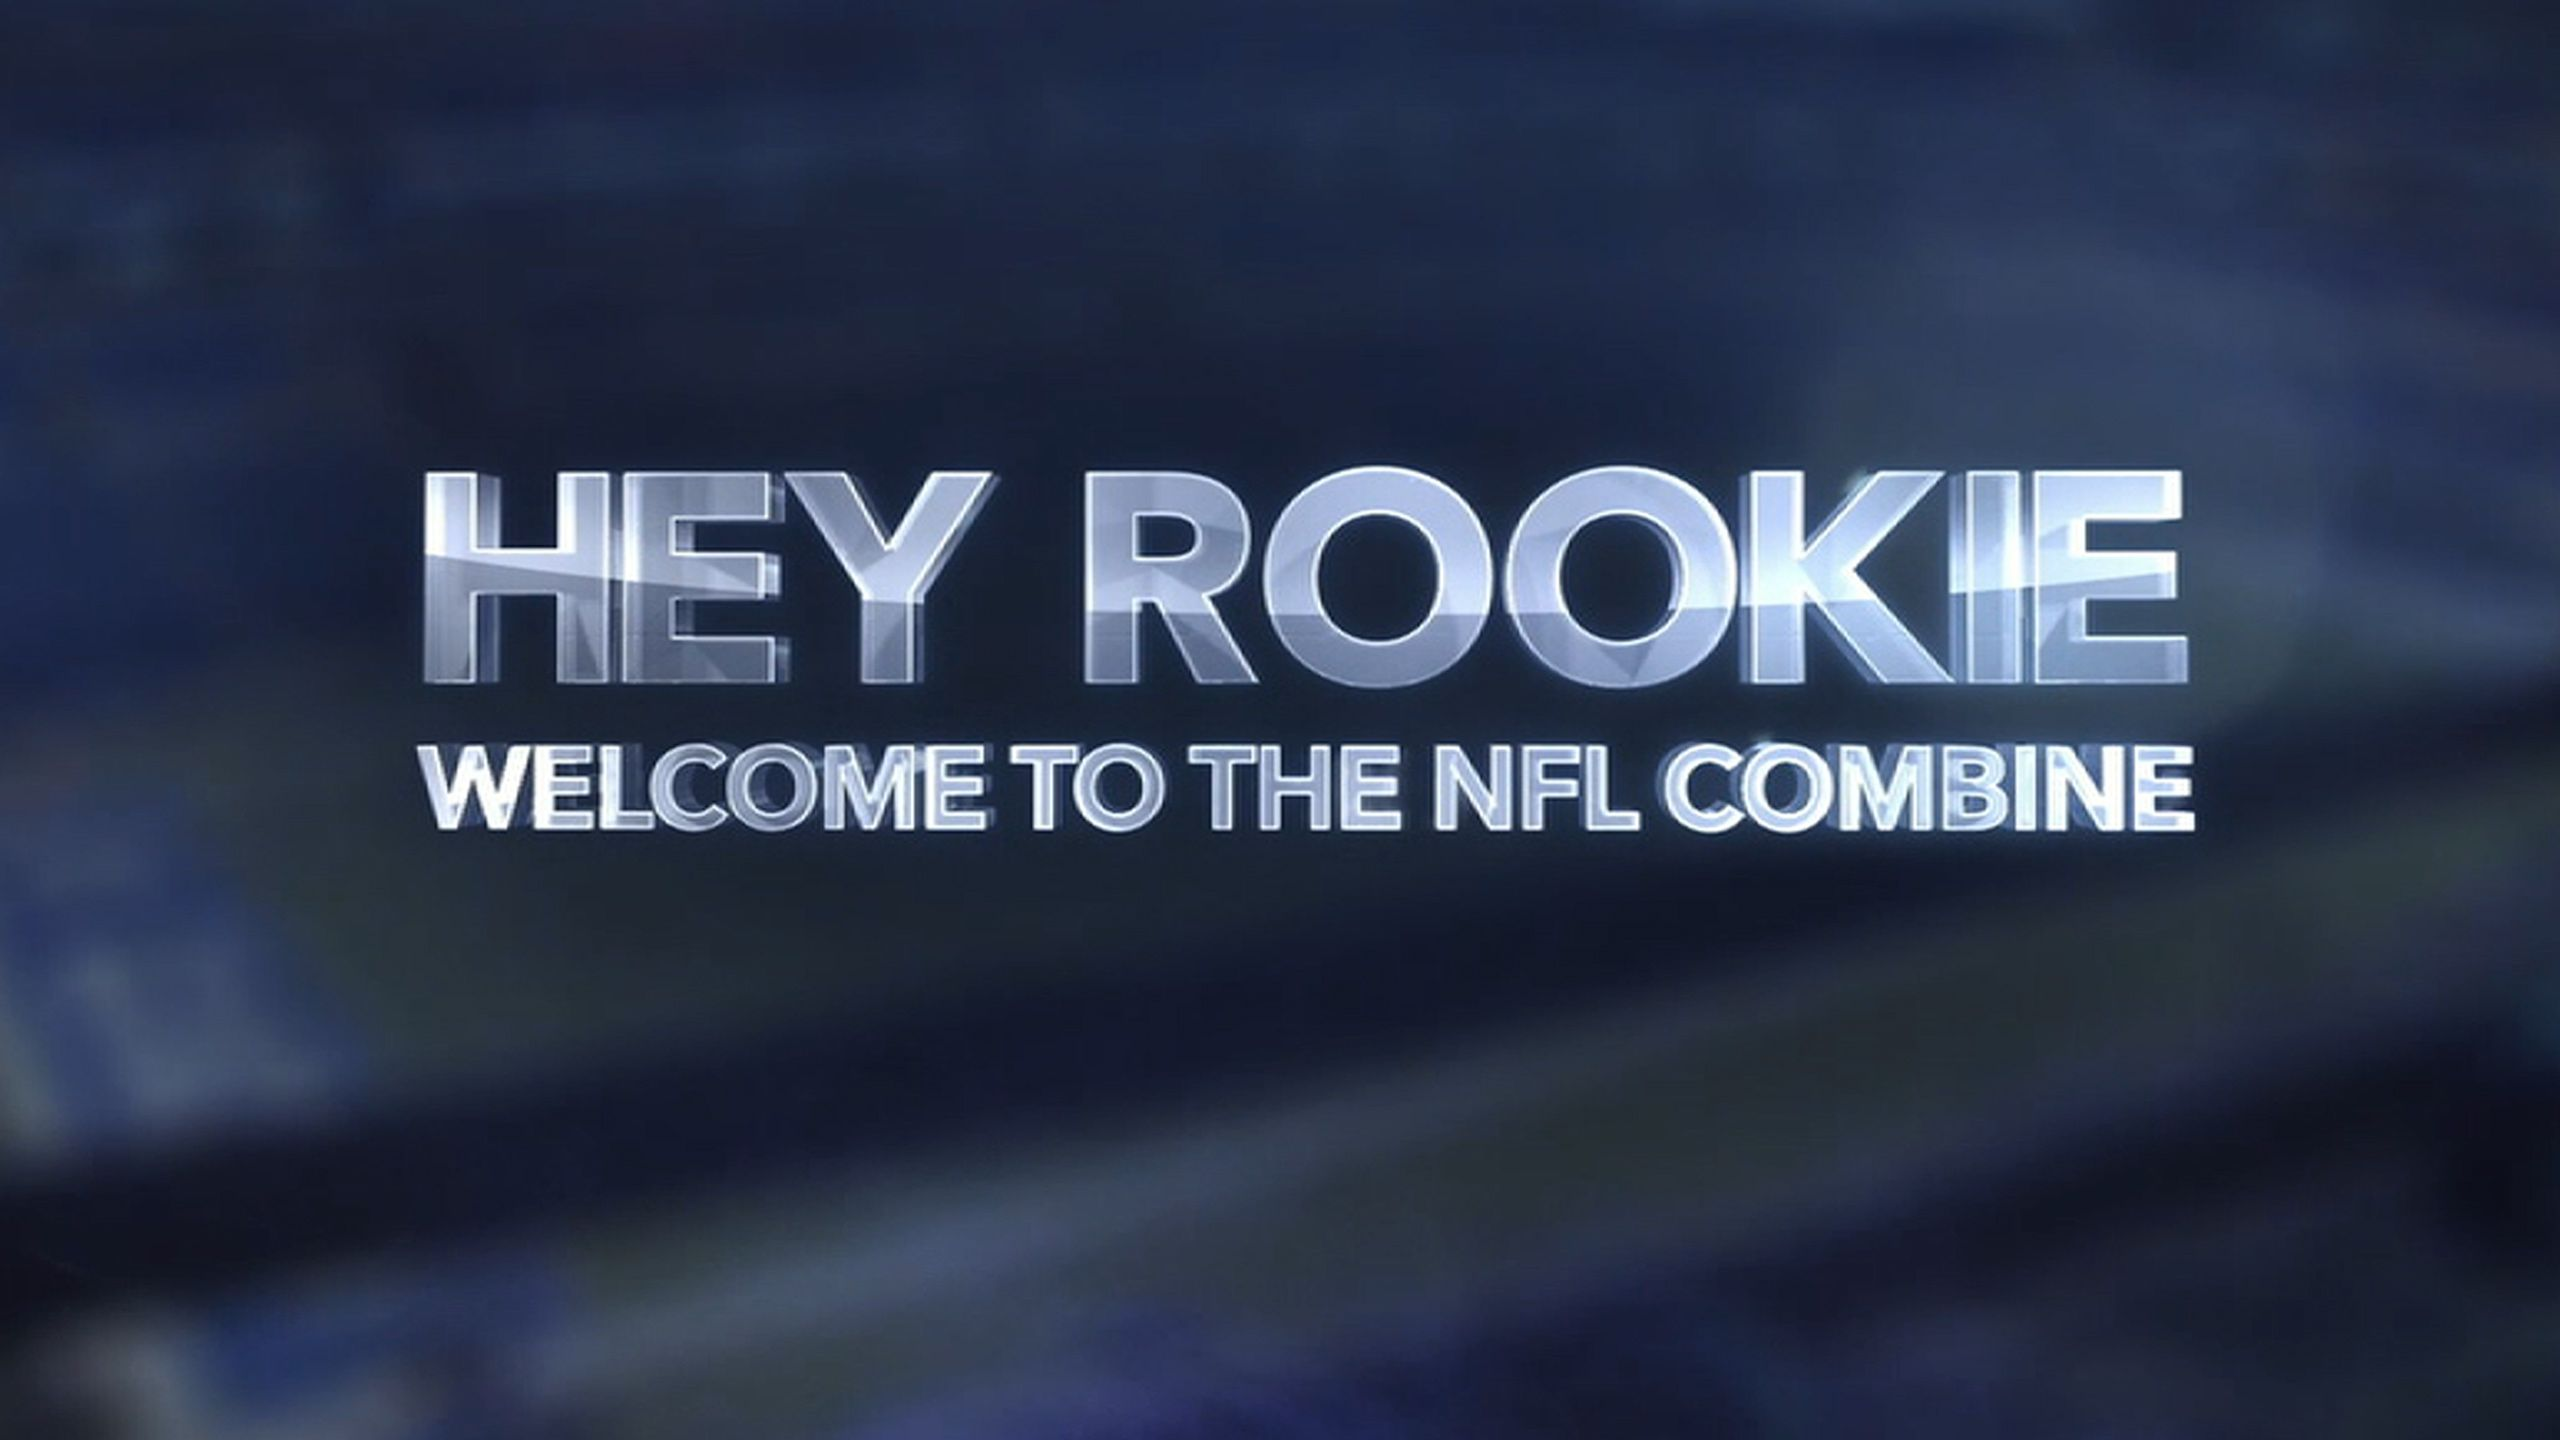 Hey Rookie: Welcome to the NFL (Episode 3)